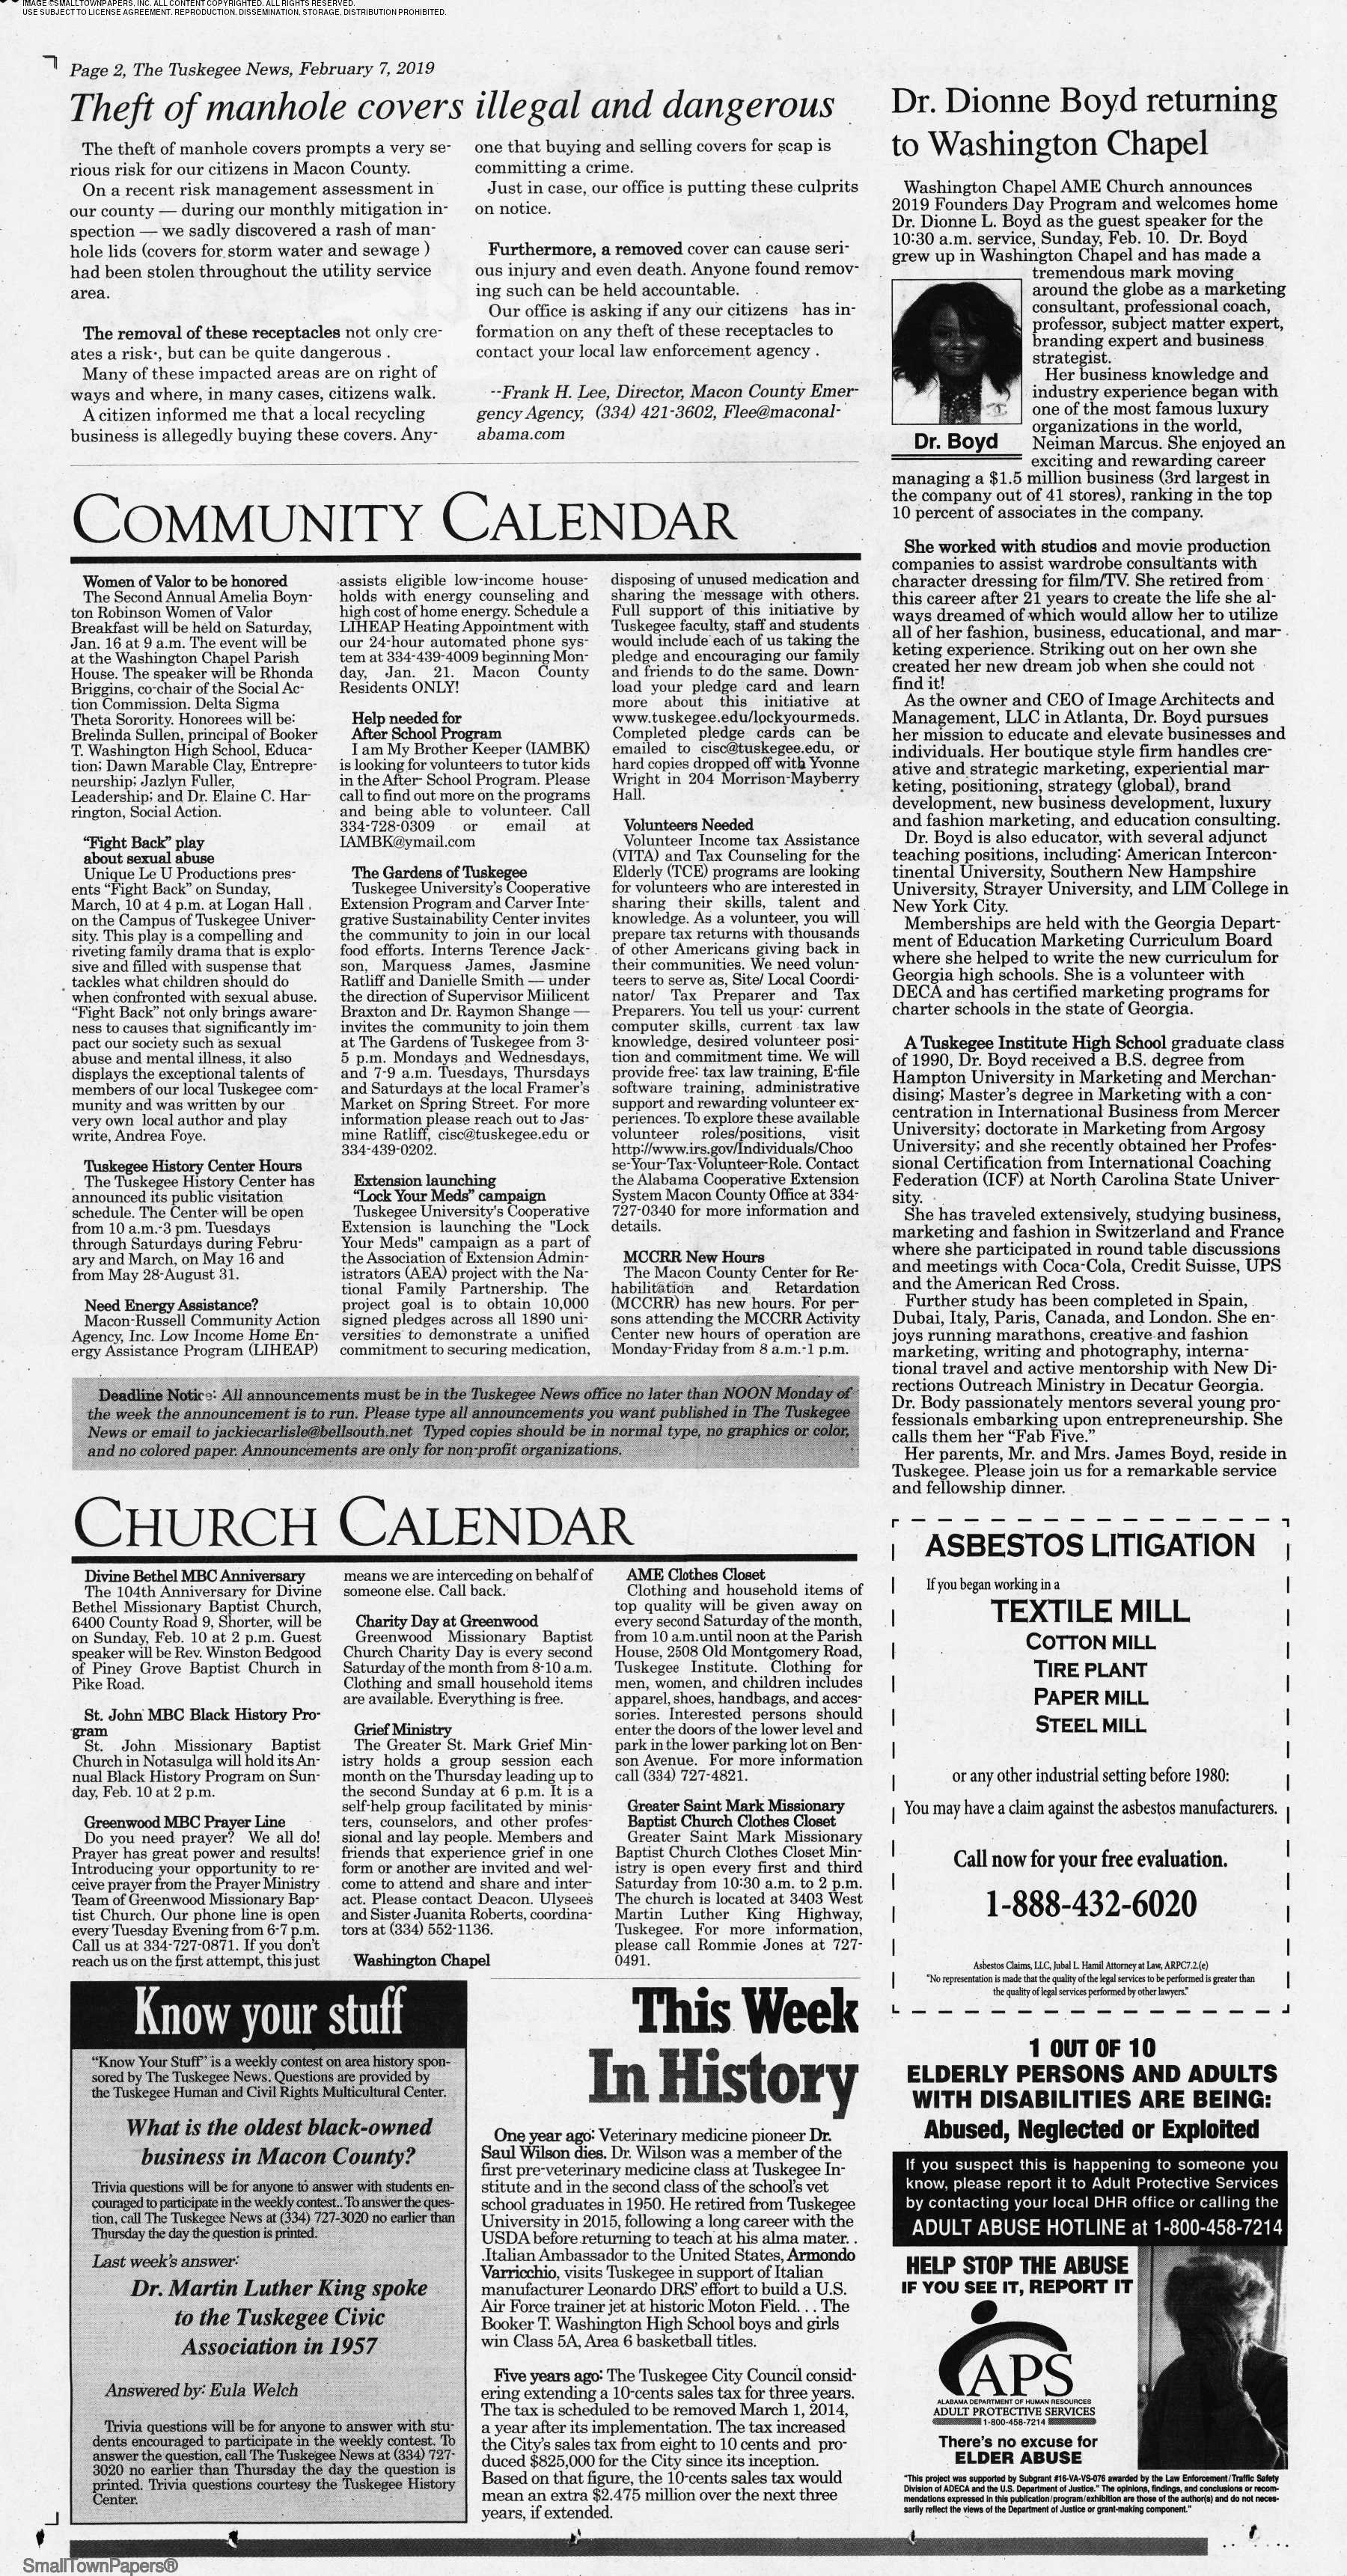 The Tuskegee News February 7, 2019: Page 2